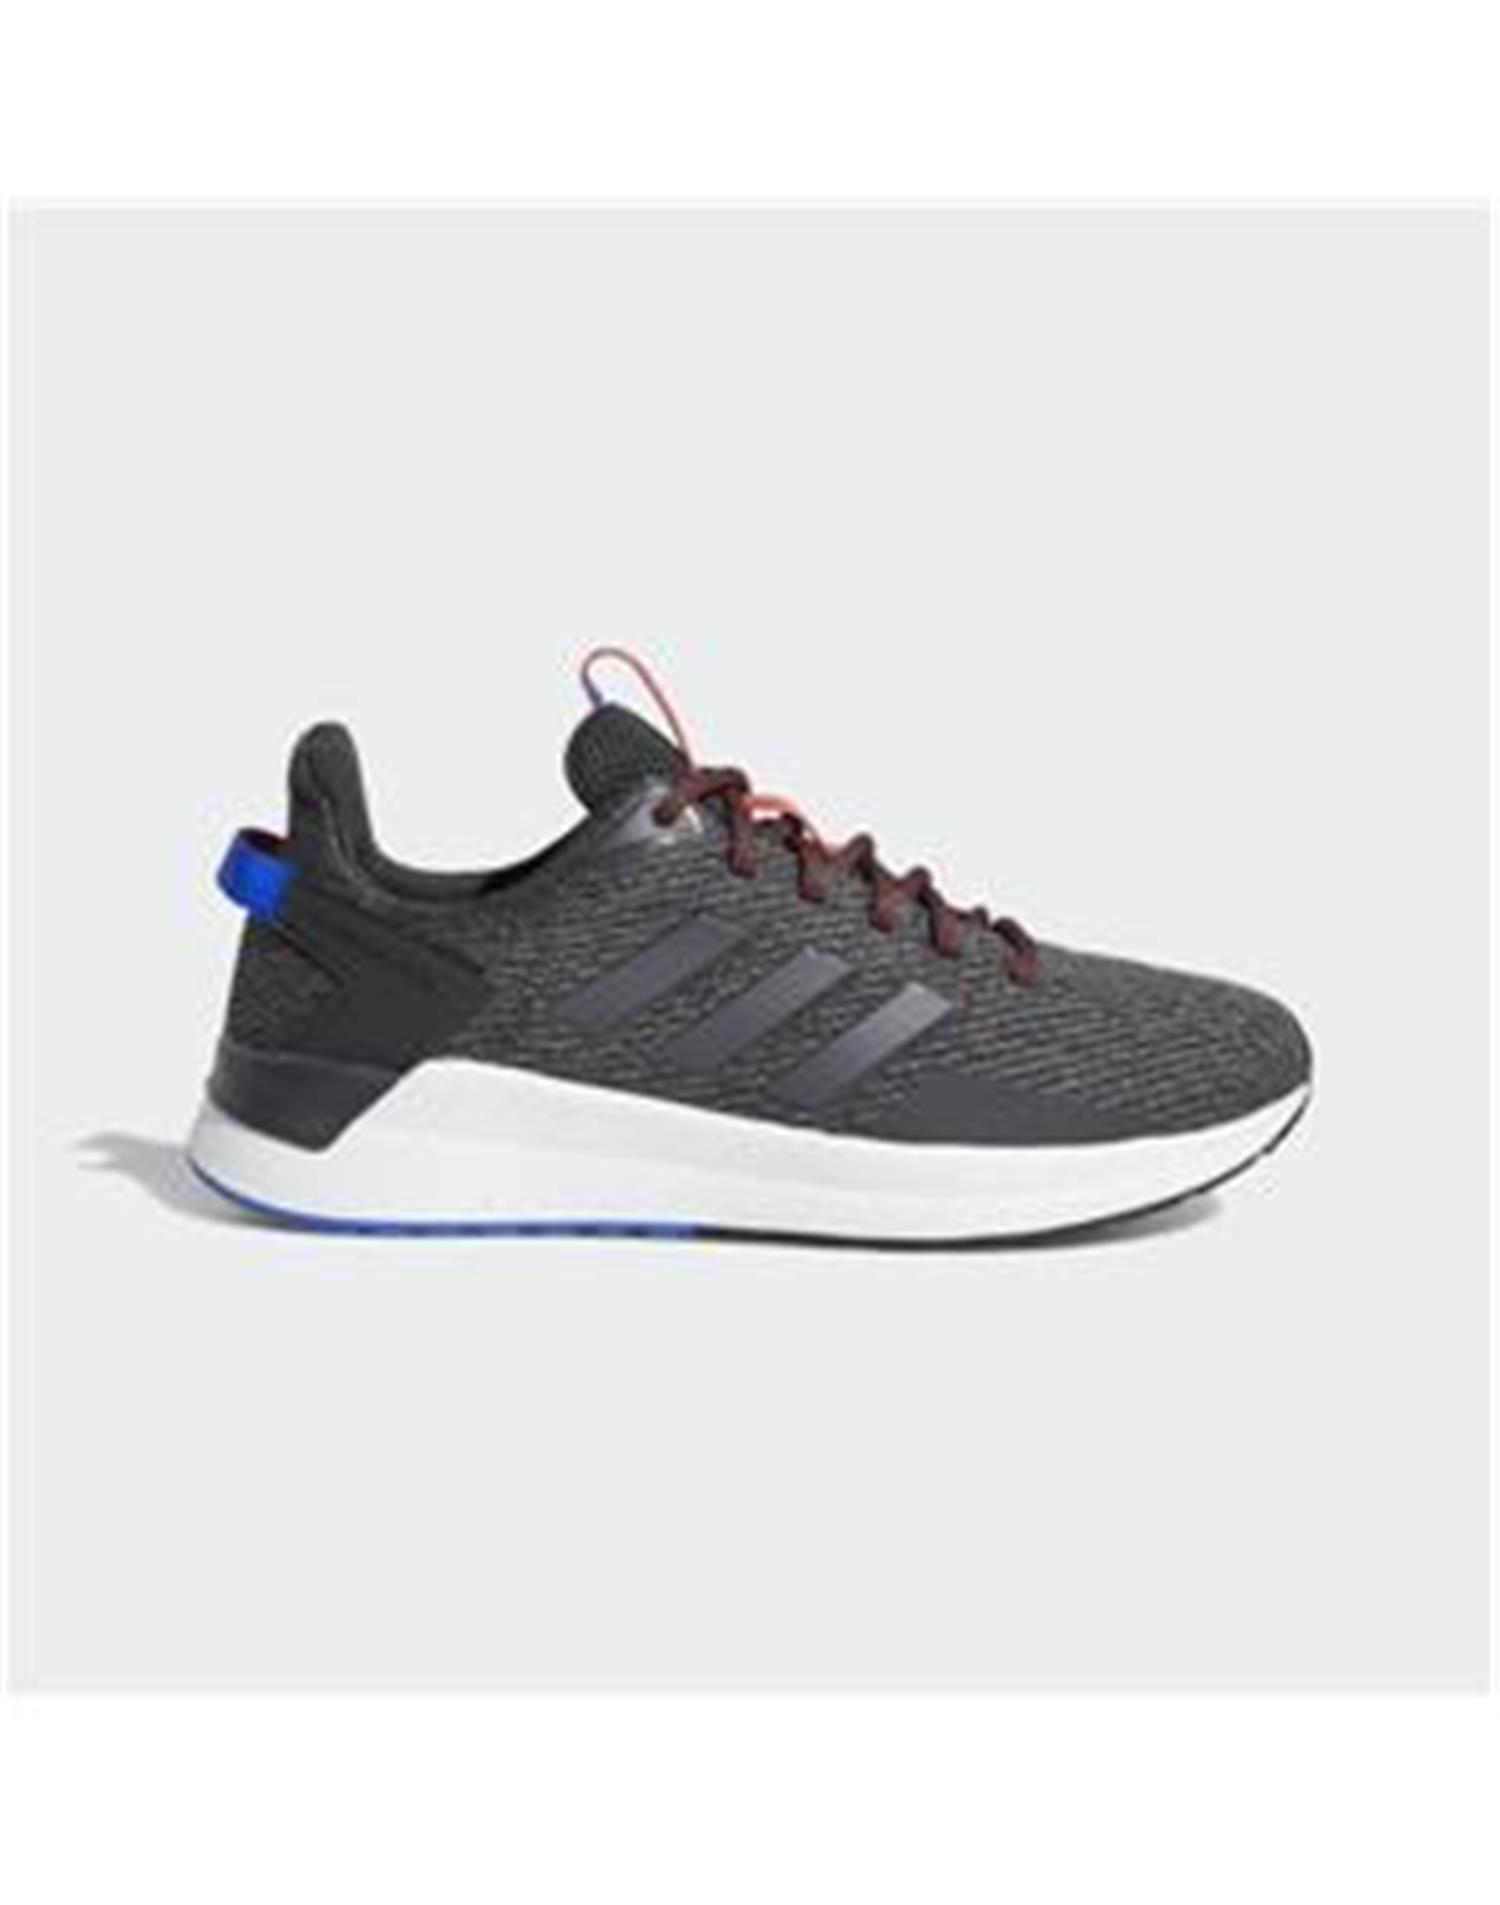 ADIDAS SCARPA UOMO RUNNING QUESTAR RIDE